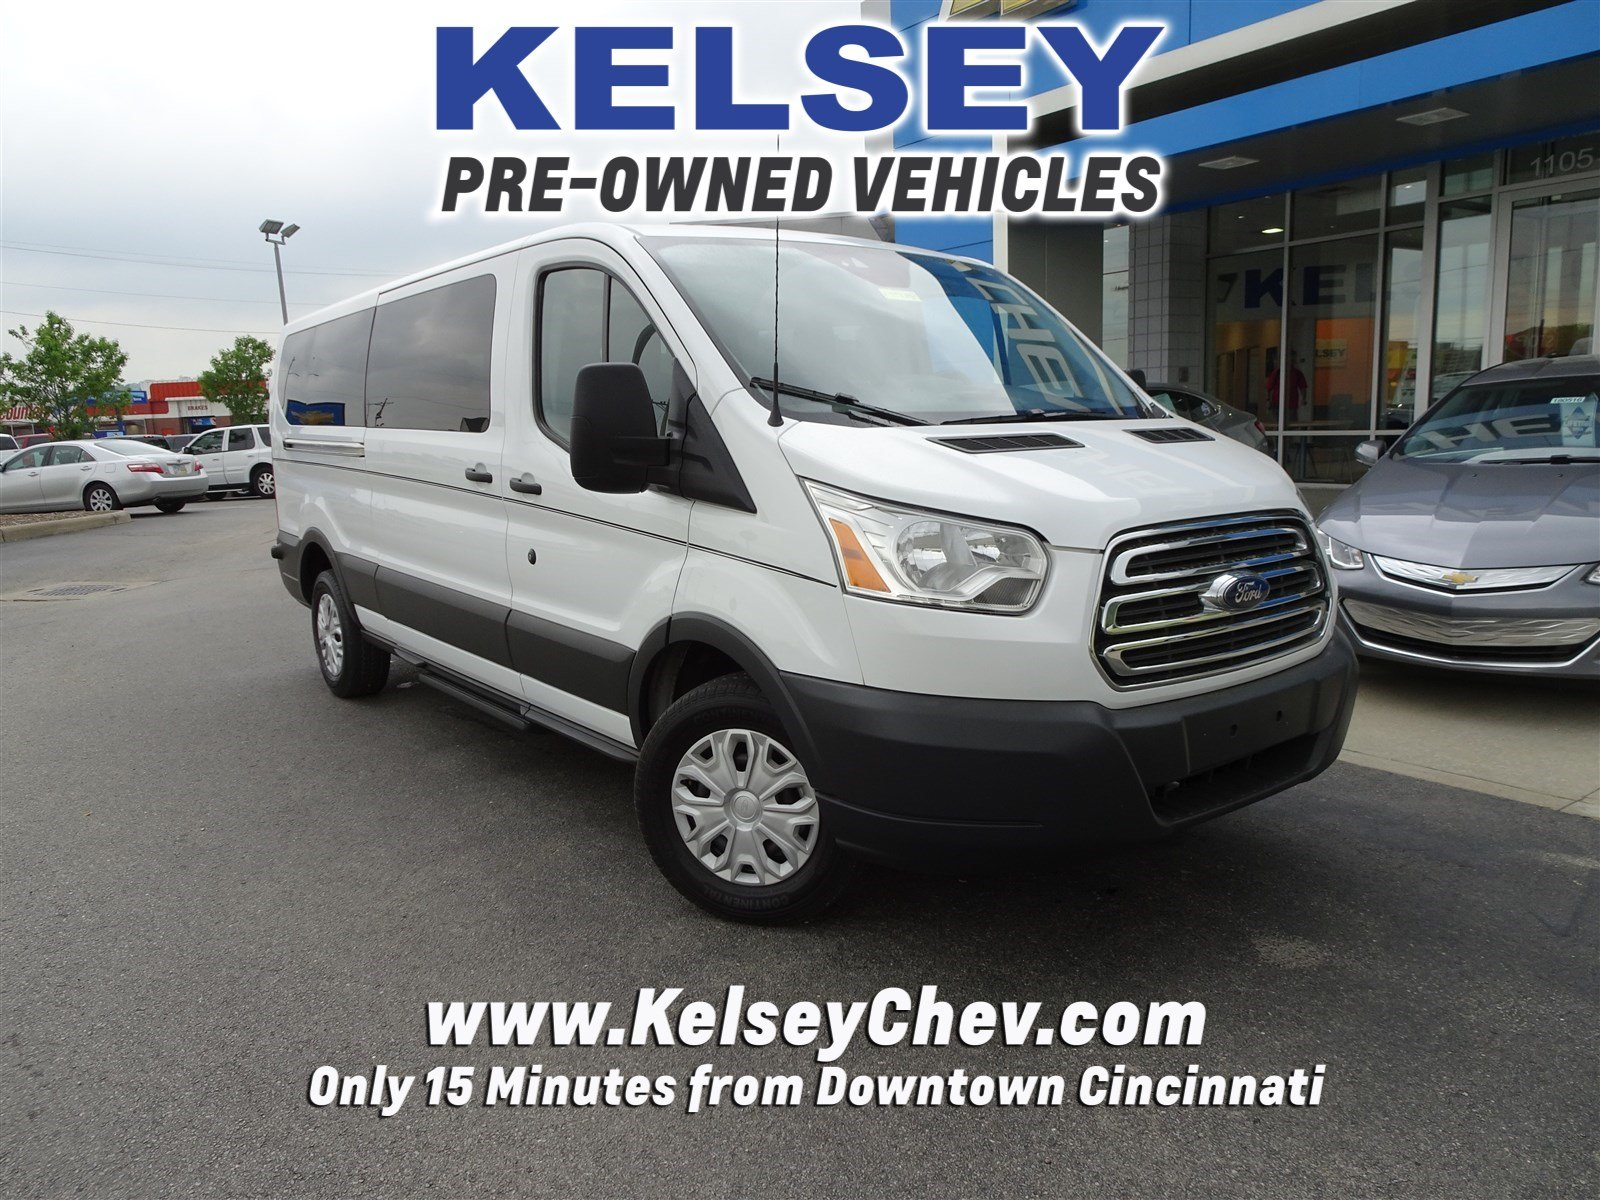 gresham seats or models transit dohc turbo in twin ford htm gdi